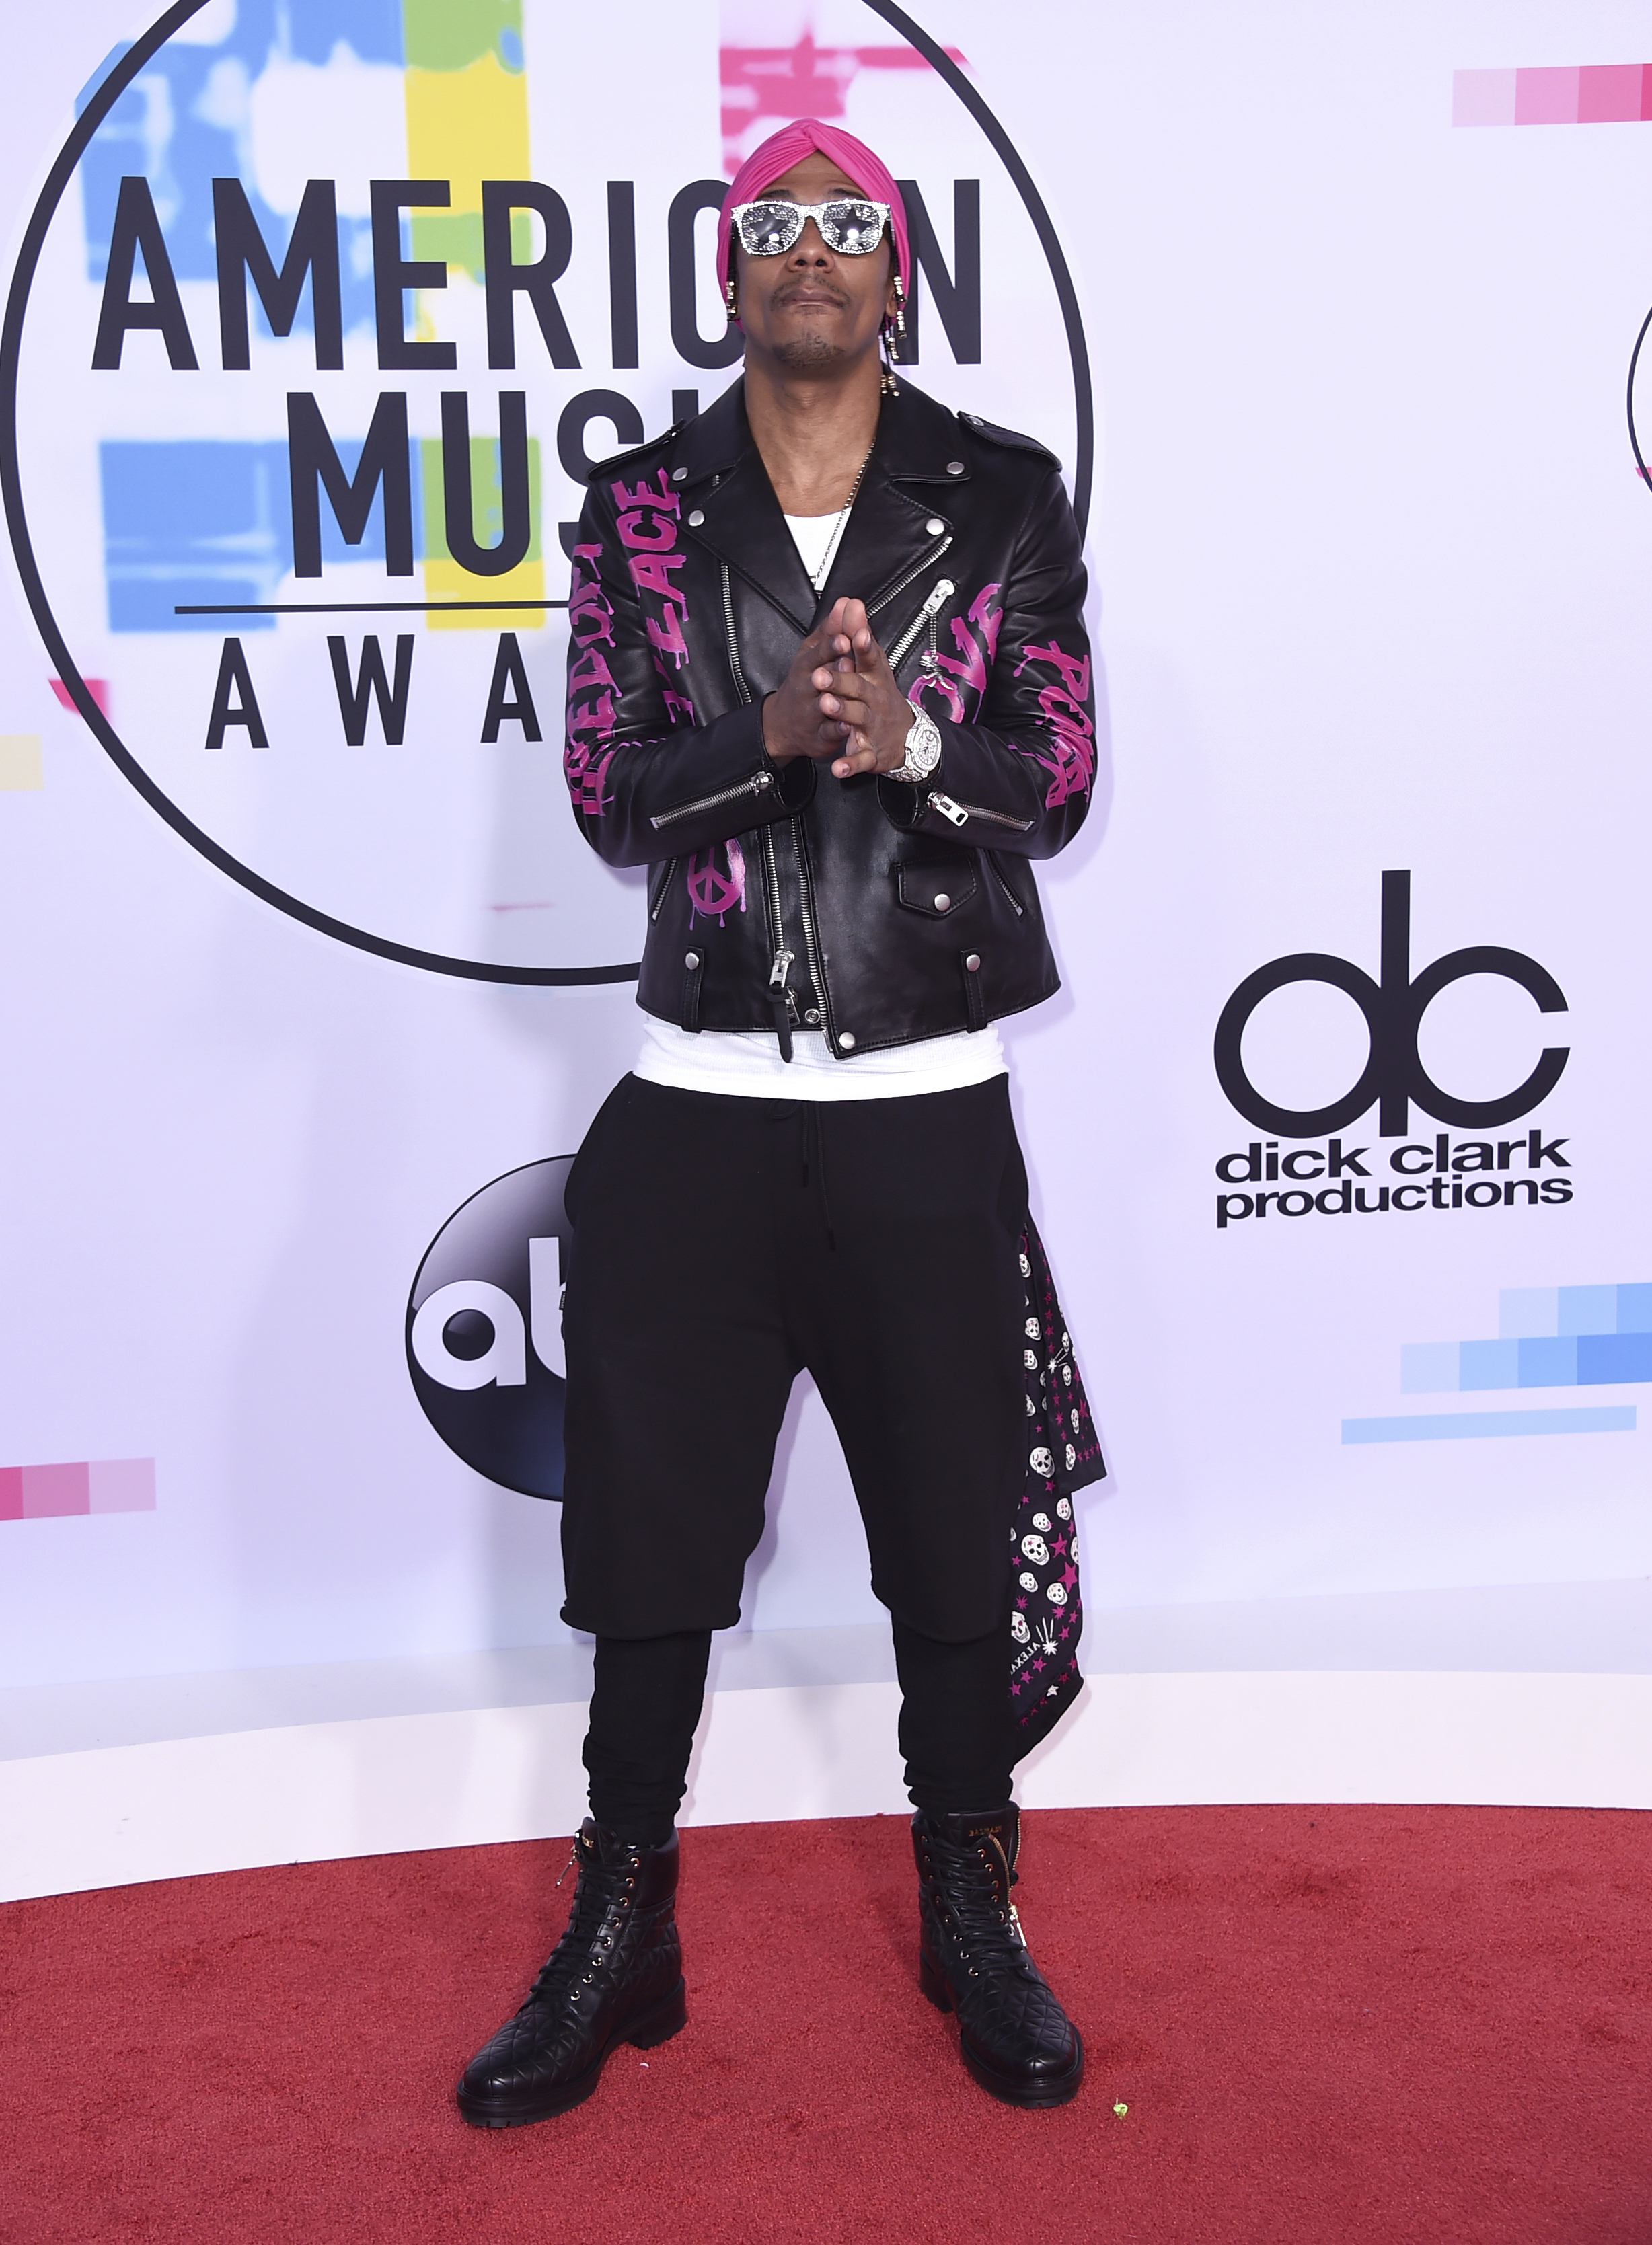 <div class='meta'><div class='origin-logo' data-origin='none'></div><span class='caption-text' data-credit='Jordan Strauss/Invision/AP'>Nick Cannon arrives at the American Music Awards at the Microsoft Theater on Sunday, Nov. 19, 2017, in Los Angeles.</span></div>